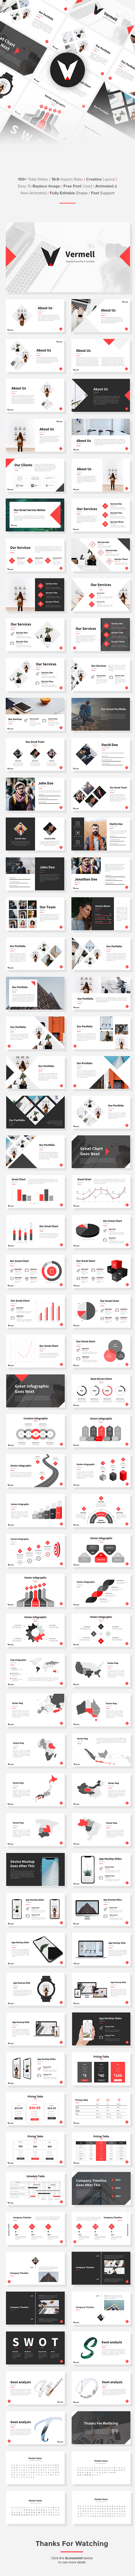 GraphicRiver Vermell Creative Google Slides Template 21035134